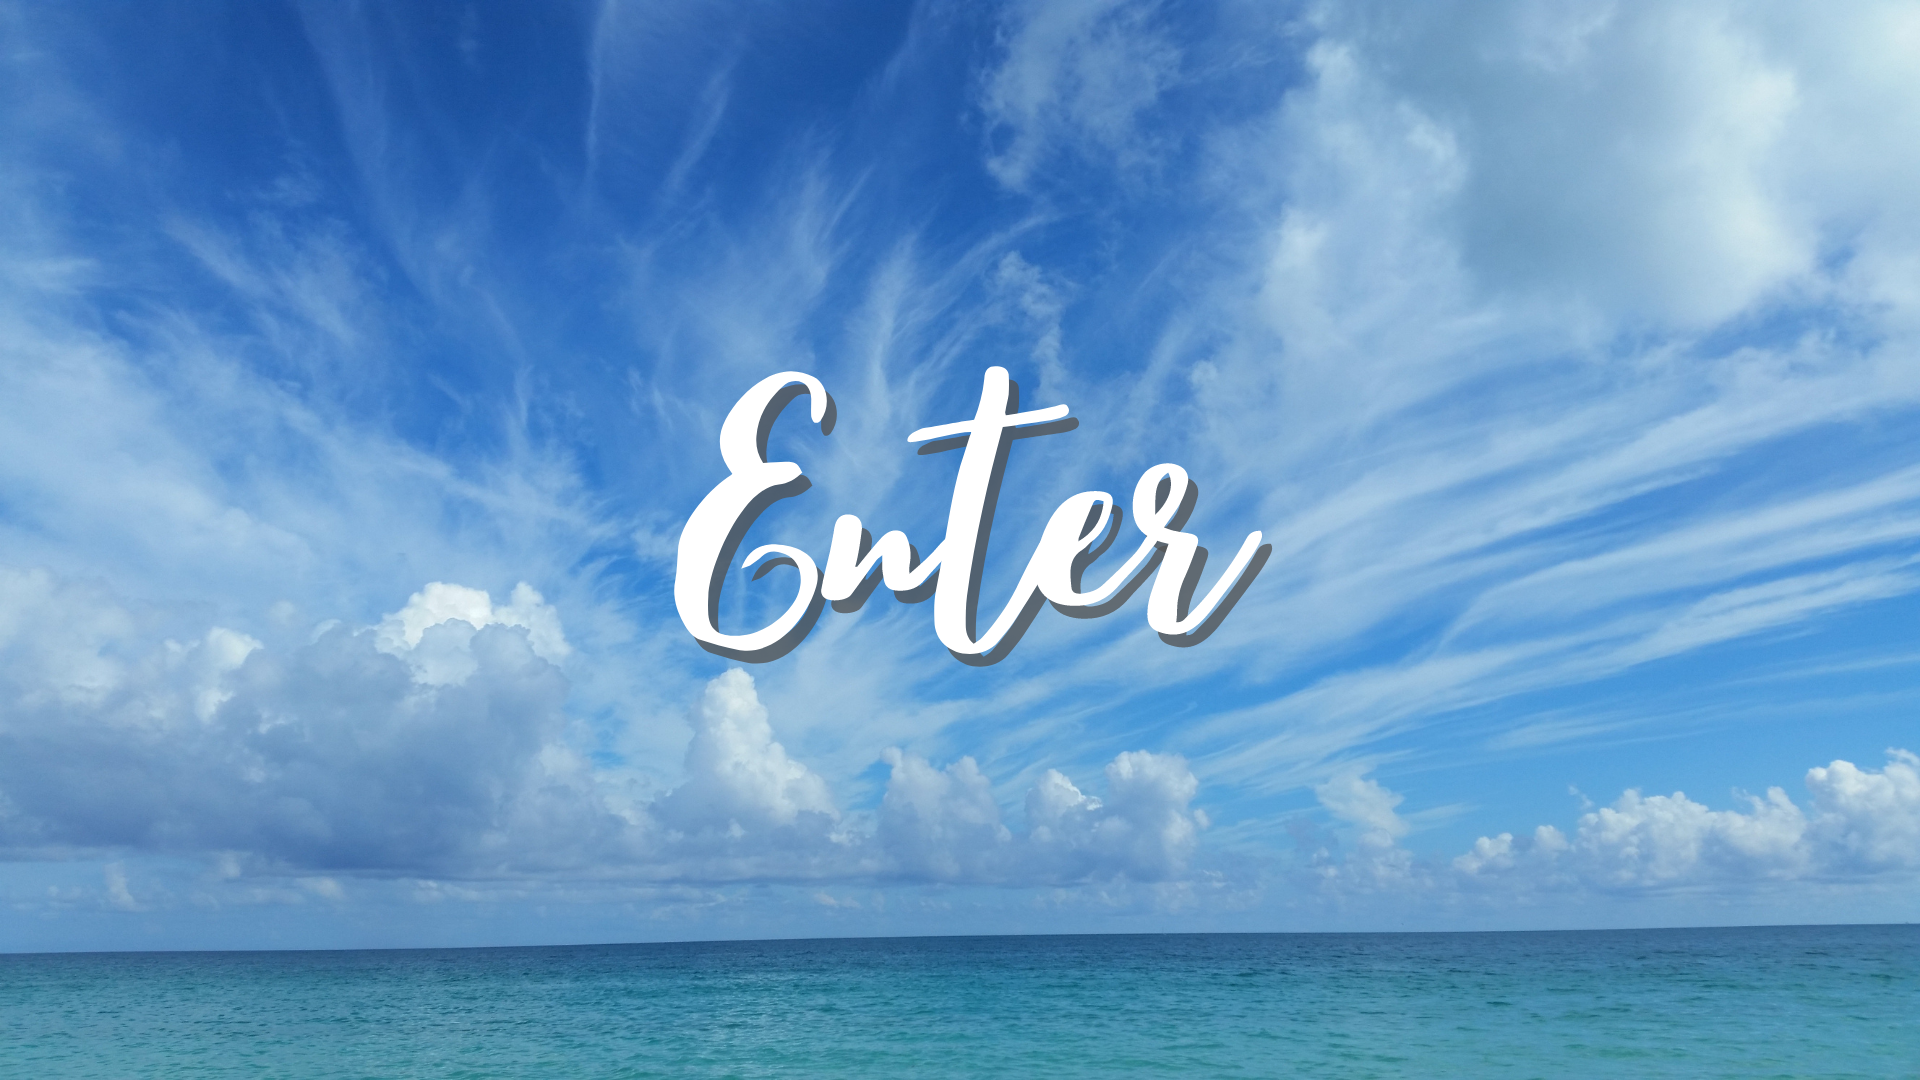 """Blue sky over blue ocean, with the word """"Enter"""" in the middle."""